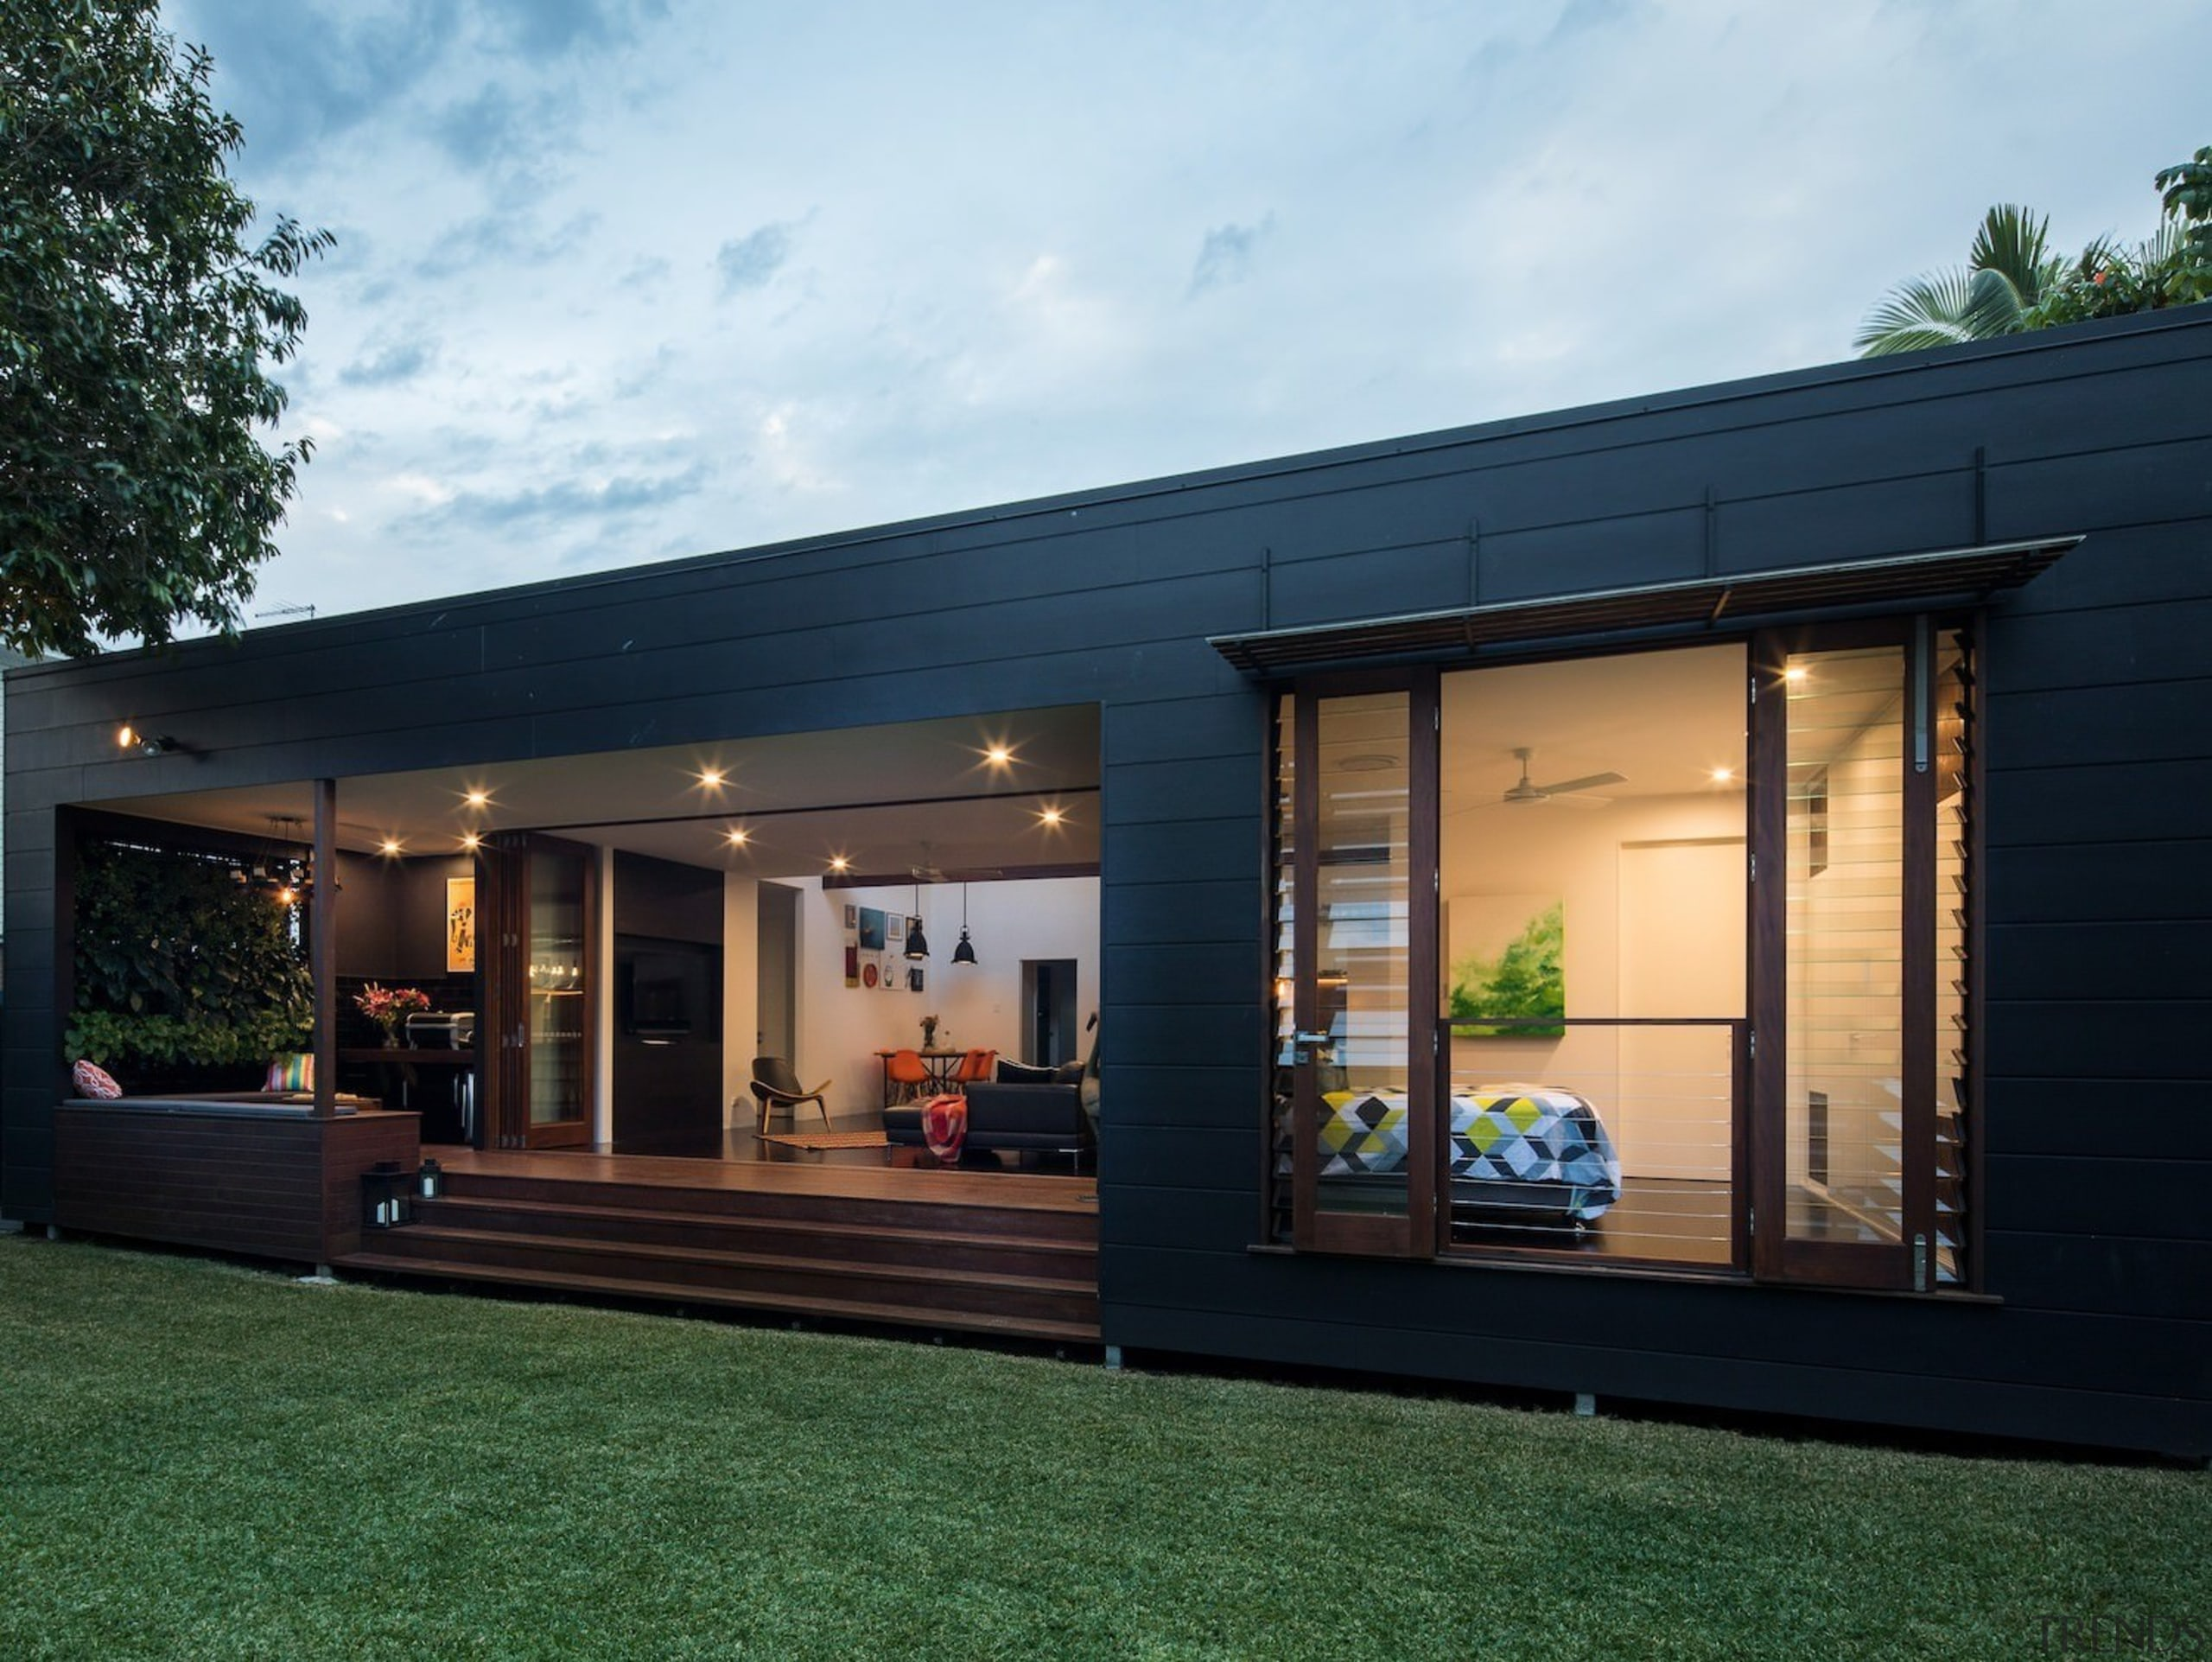 Architect: Blue Giraffe StudioPhotography by md photography architecture, facade, home, house, property, real estate, window, black